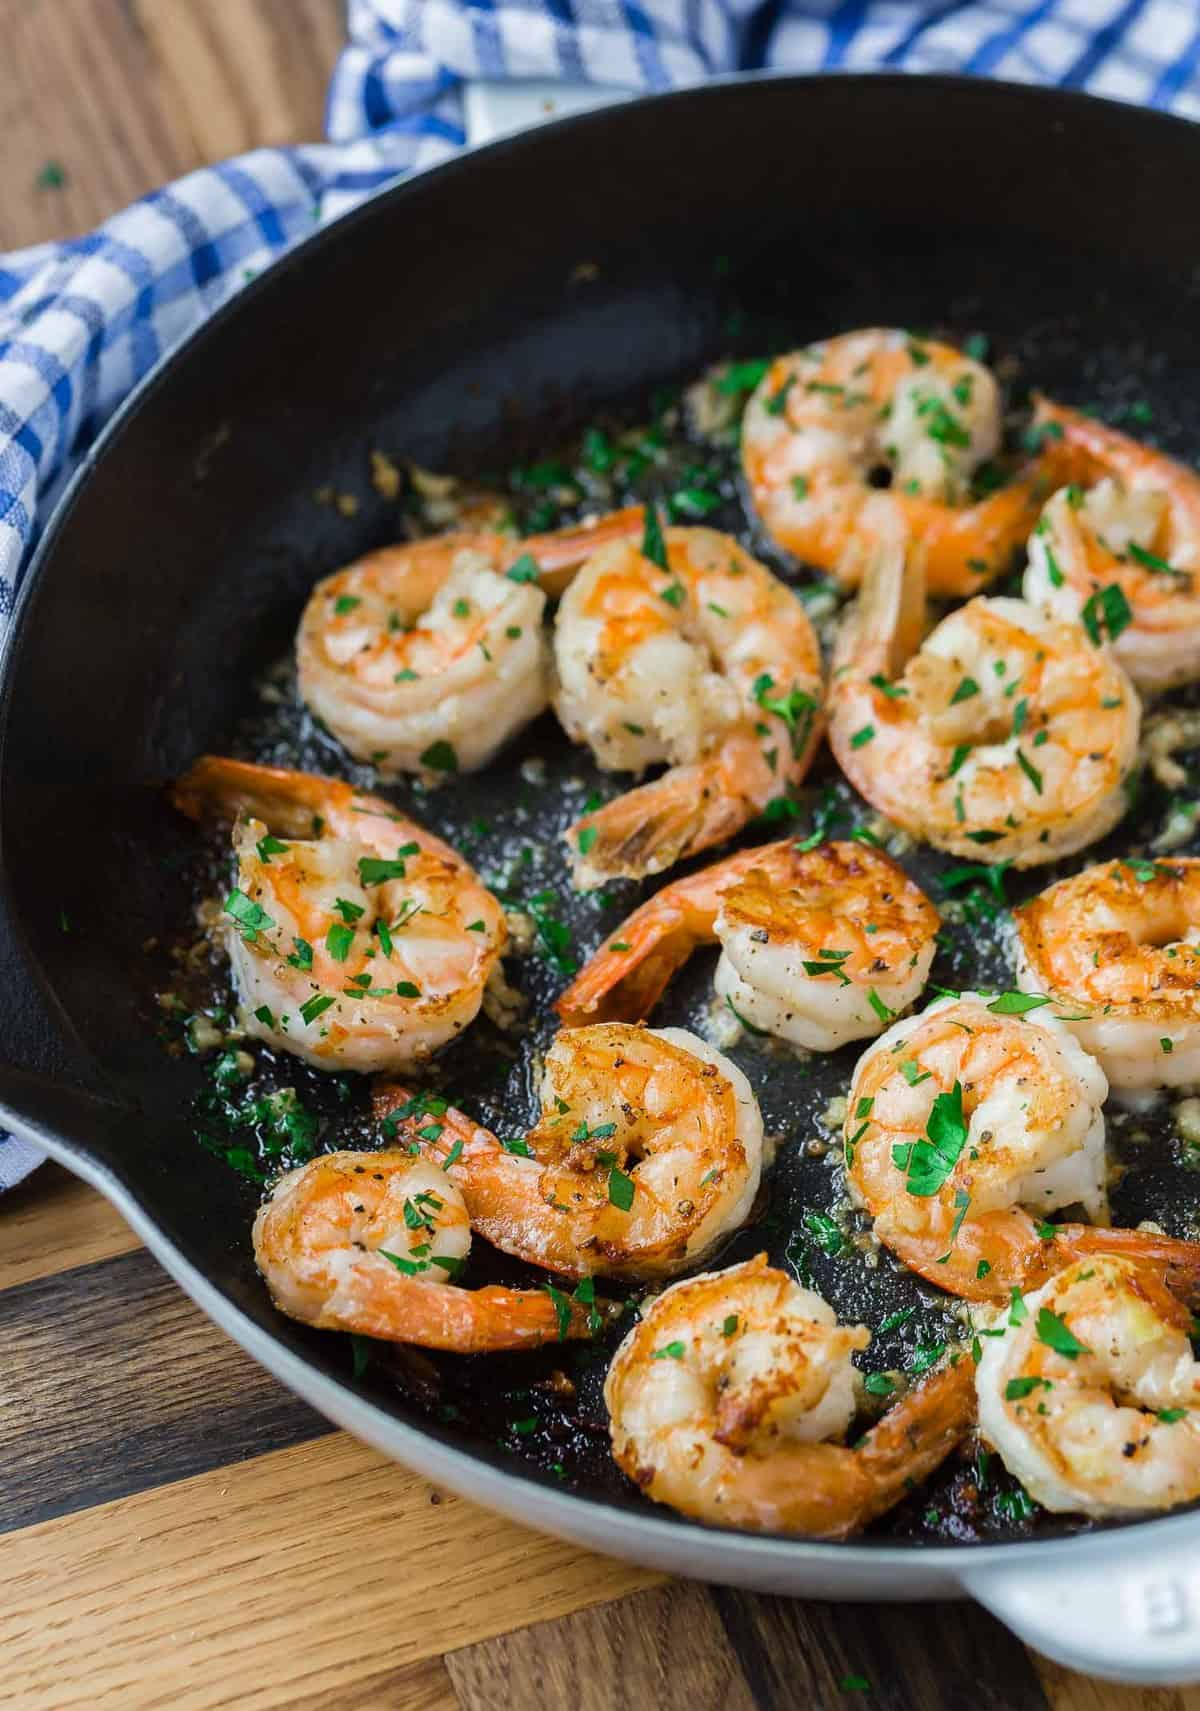 Cooked shrimp garnished with fresh parsley.